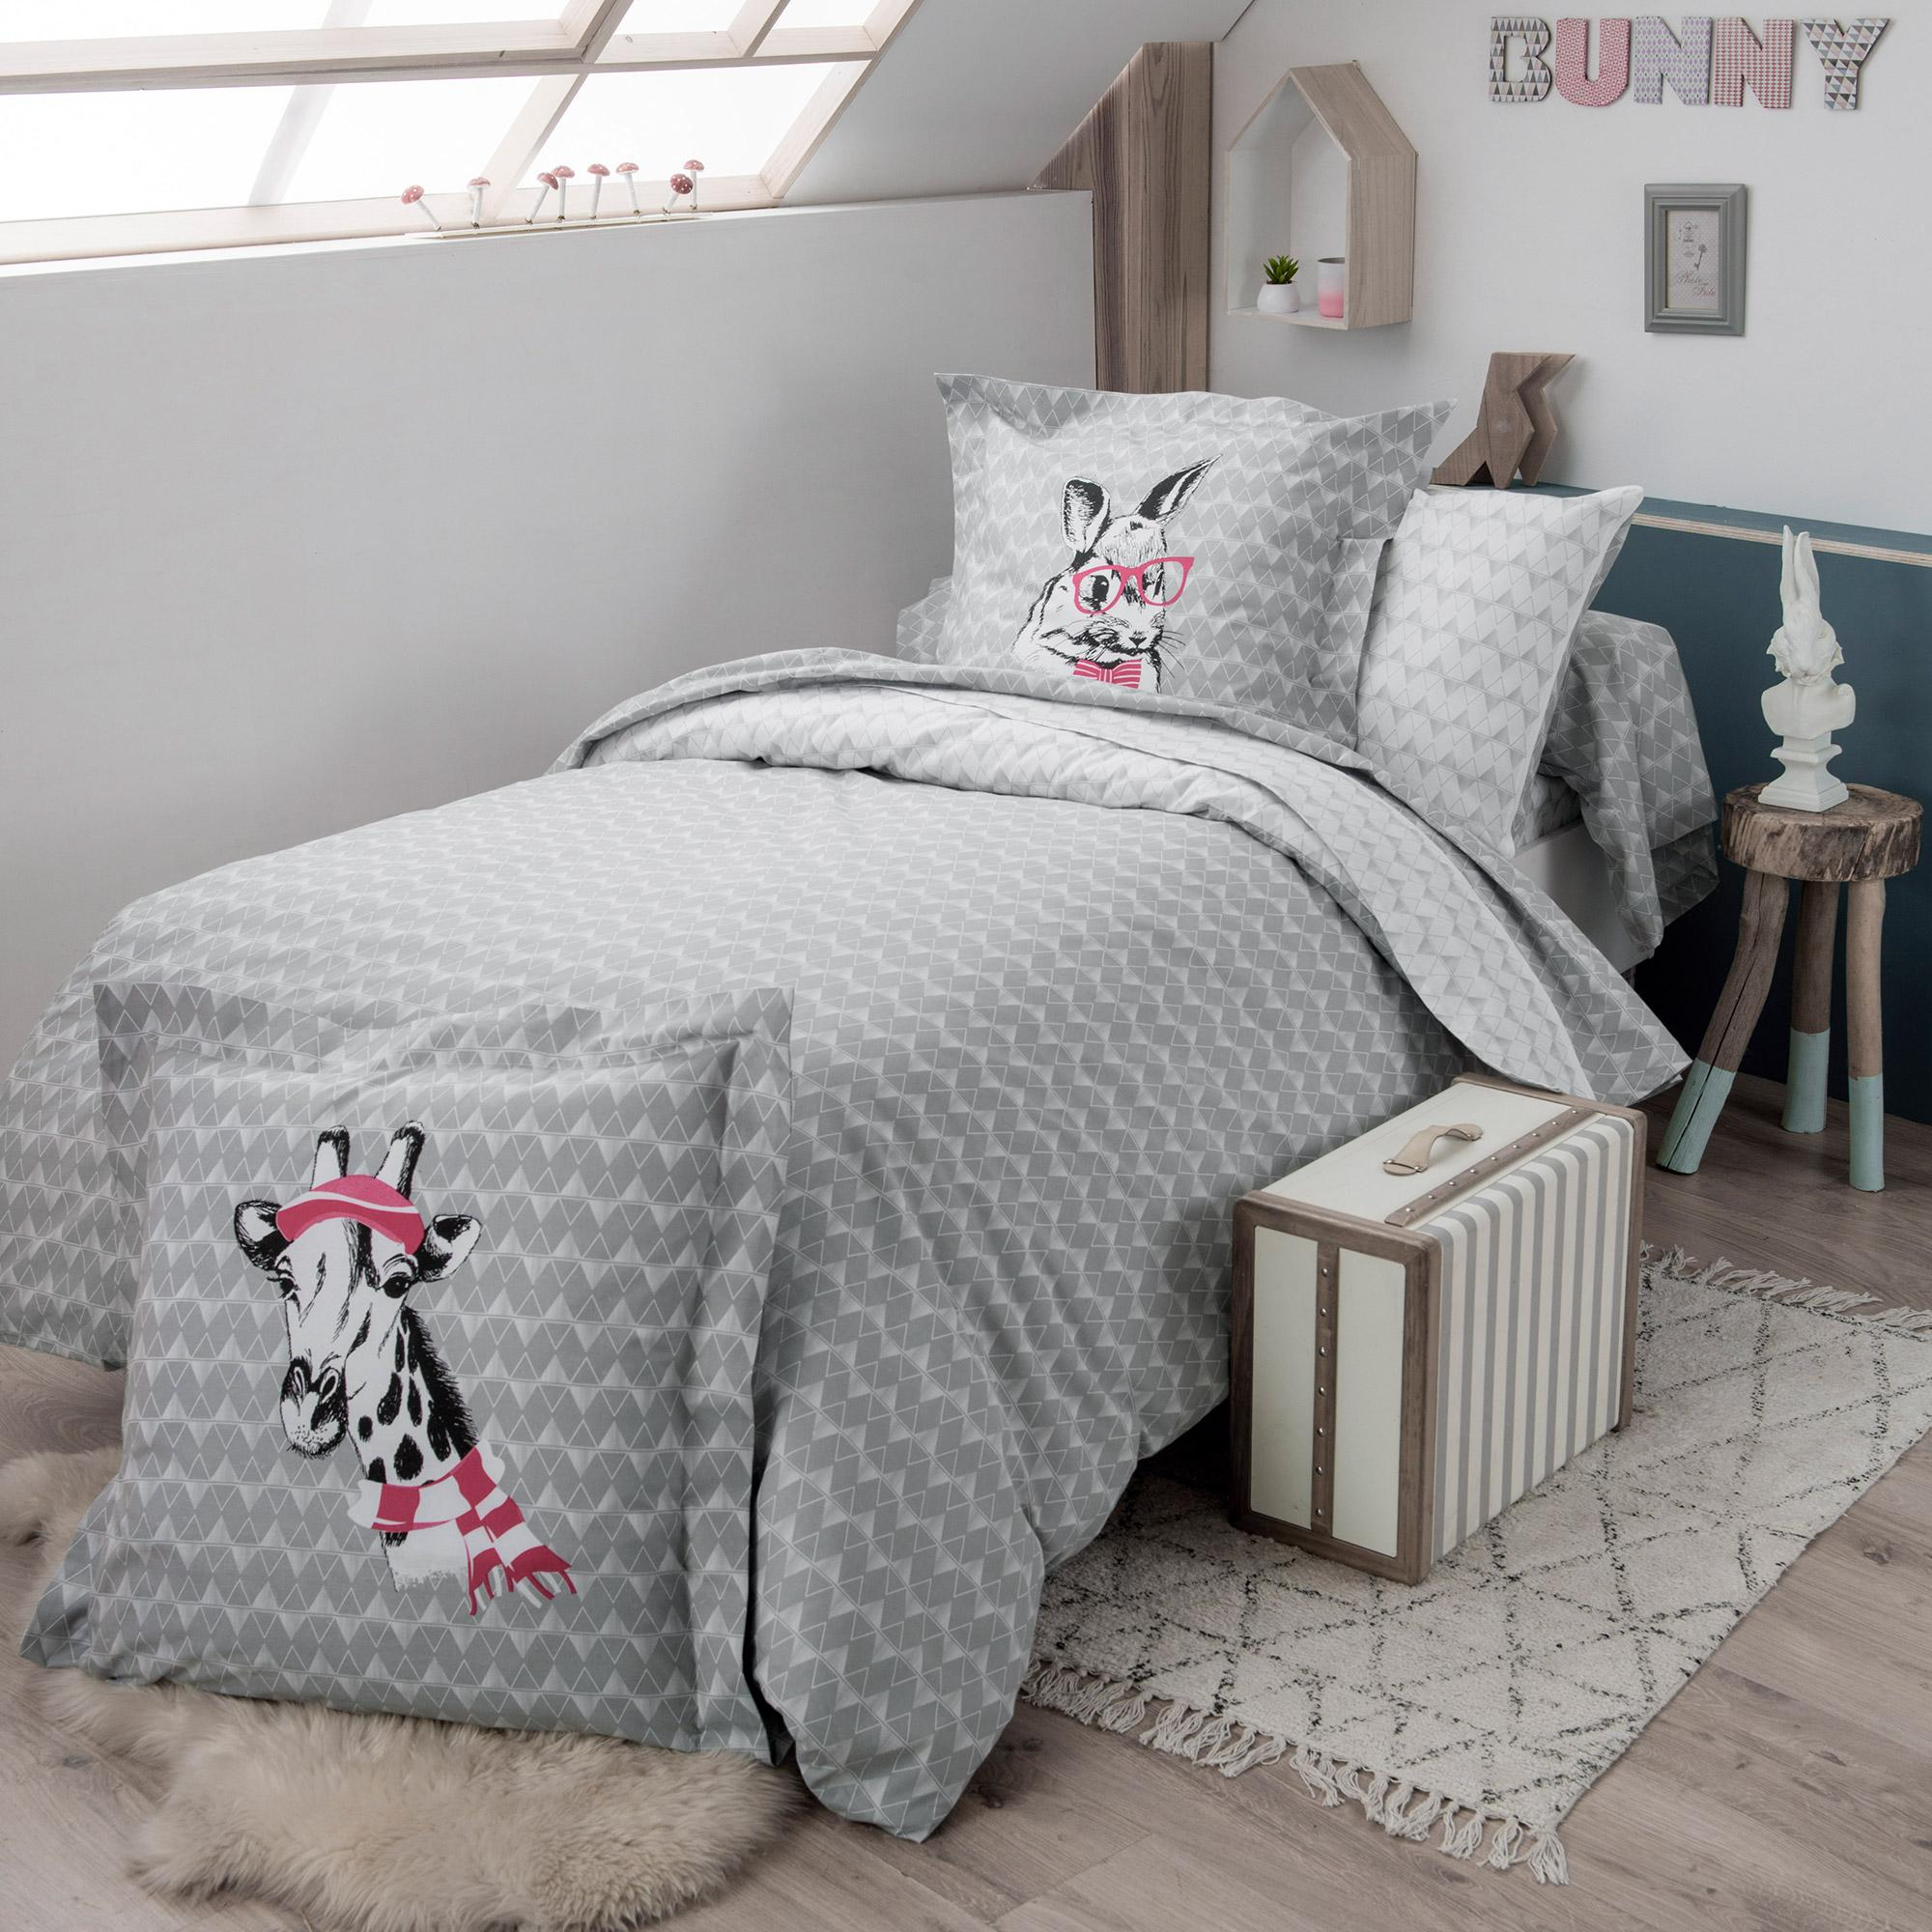 drap housse 90x190 cm 100 coton bunny linnea linge de maison et. Black Bedroom Furniture Sets. Home Design Ideas